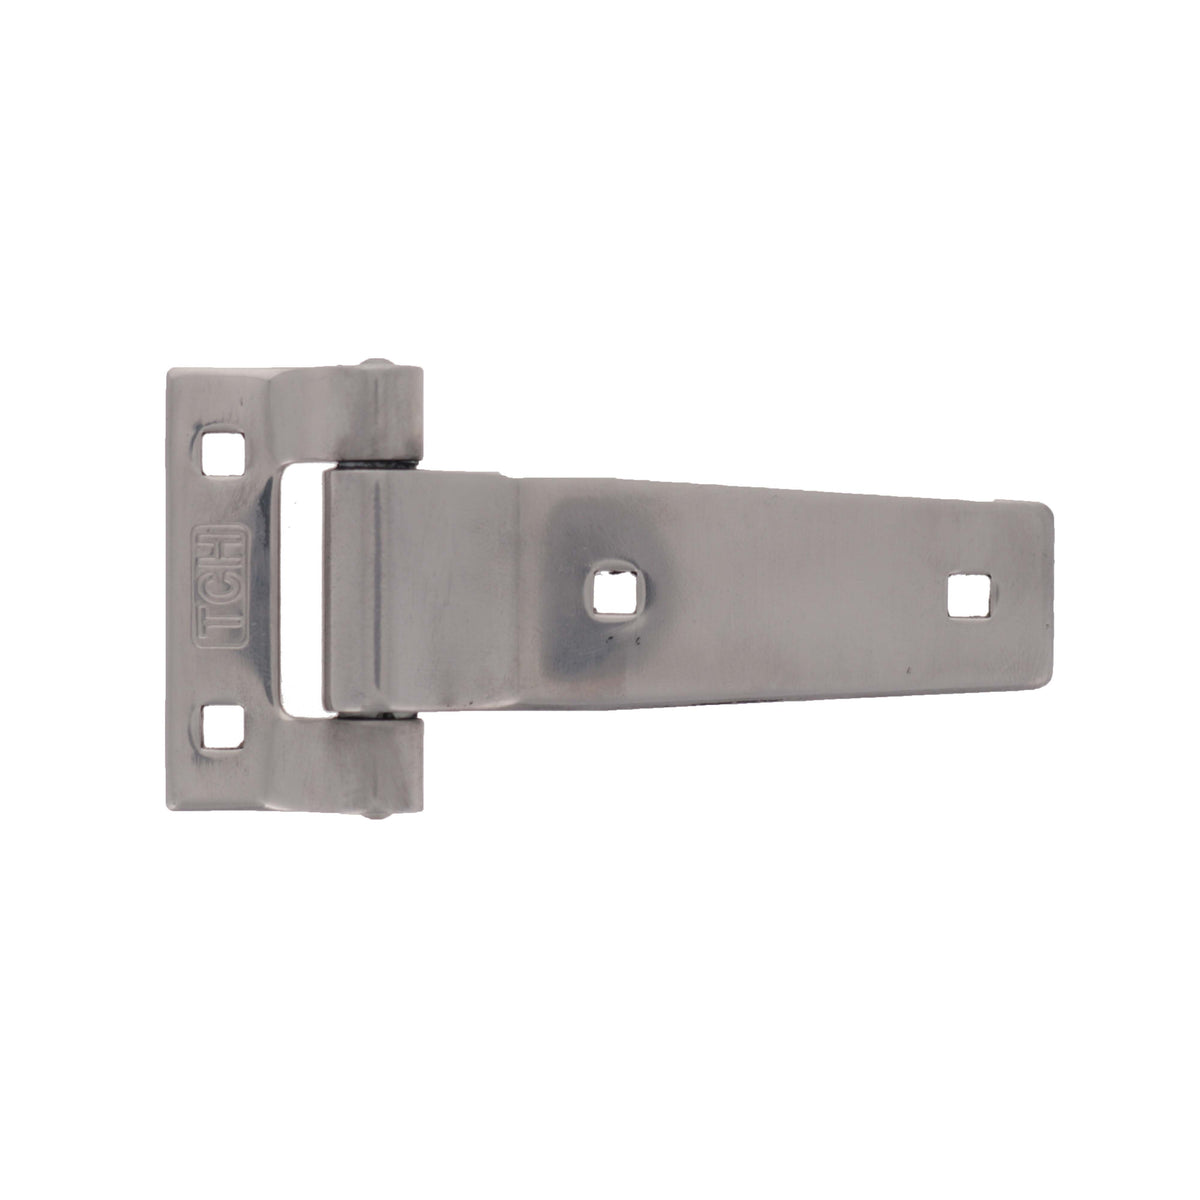 "3"" Polished Stainless Steel Strap Hinge"